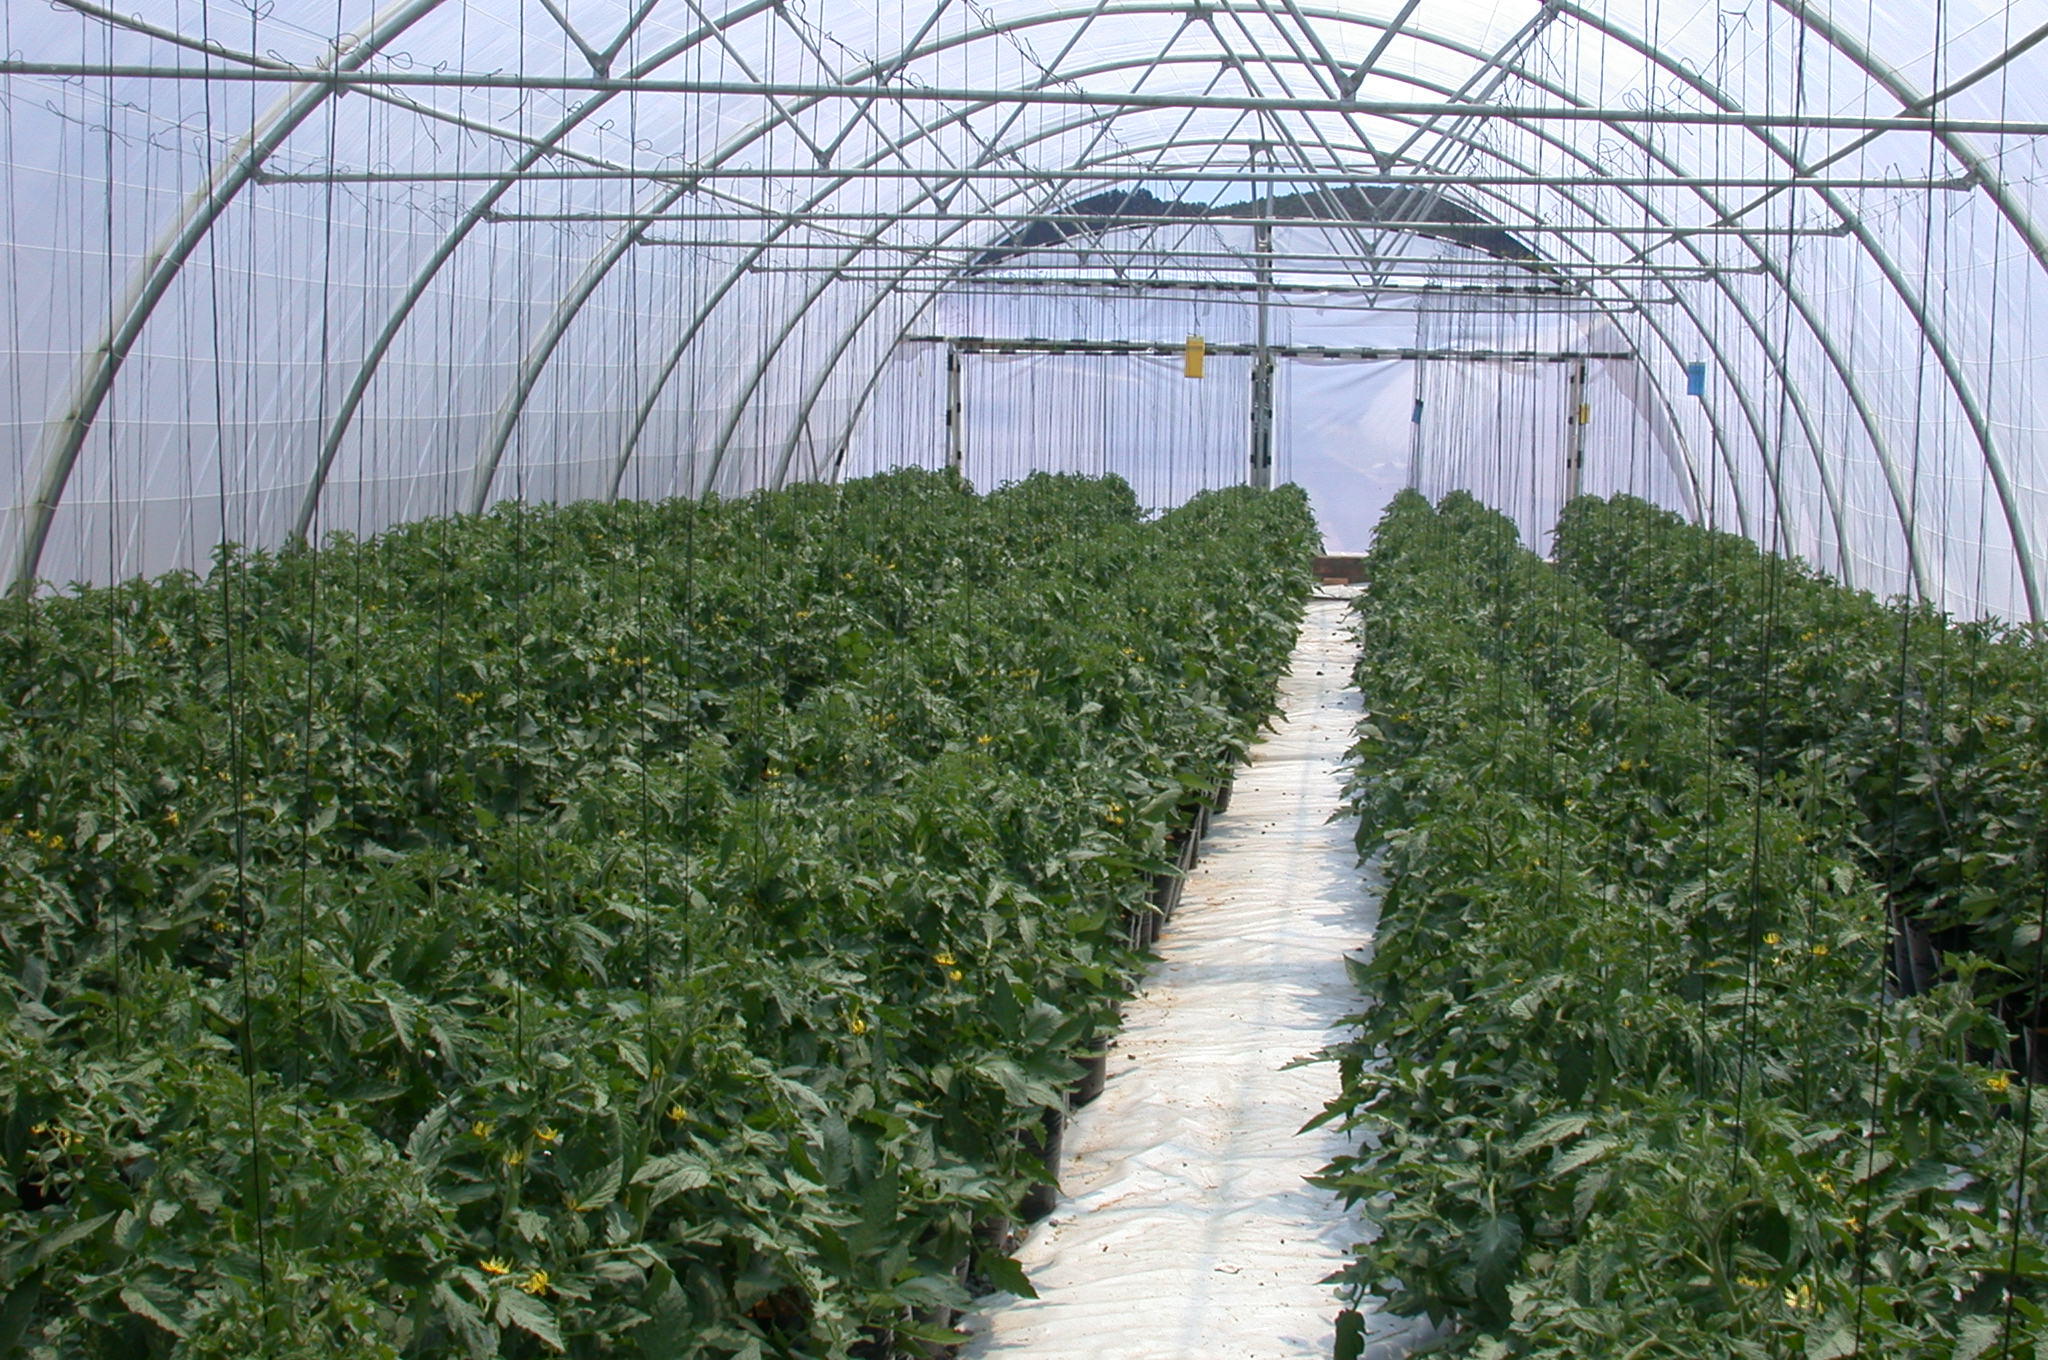 Exciting Tomatoes Planted A Row At Plants Per Soillesssubstrate Is Pine Link Between Plant Yield Revenue From A Tunnel Tomato Plant Spacing Aquaponics Proper Tomato Plant Spacing houzz-03 Tomato Plant Spacing